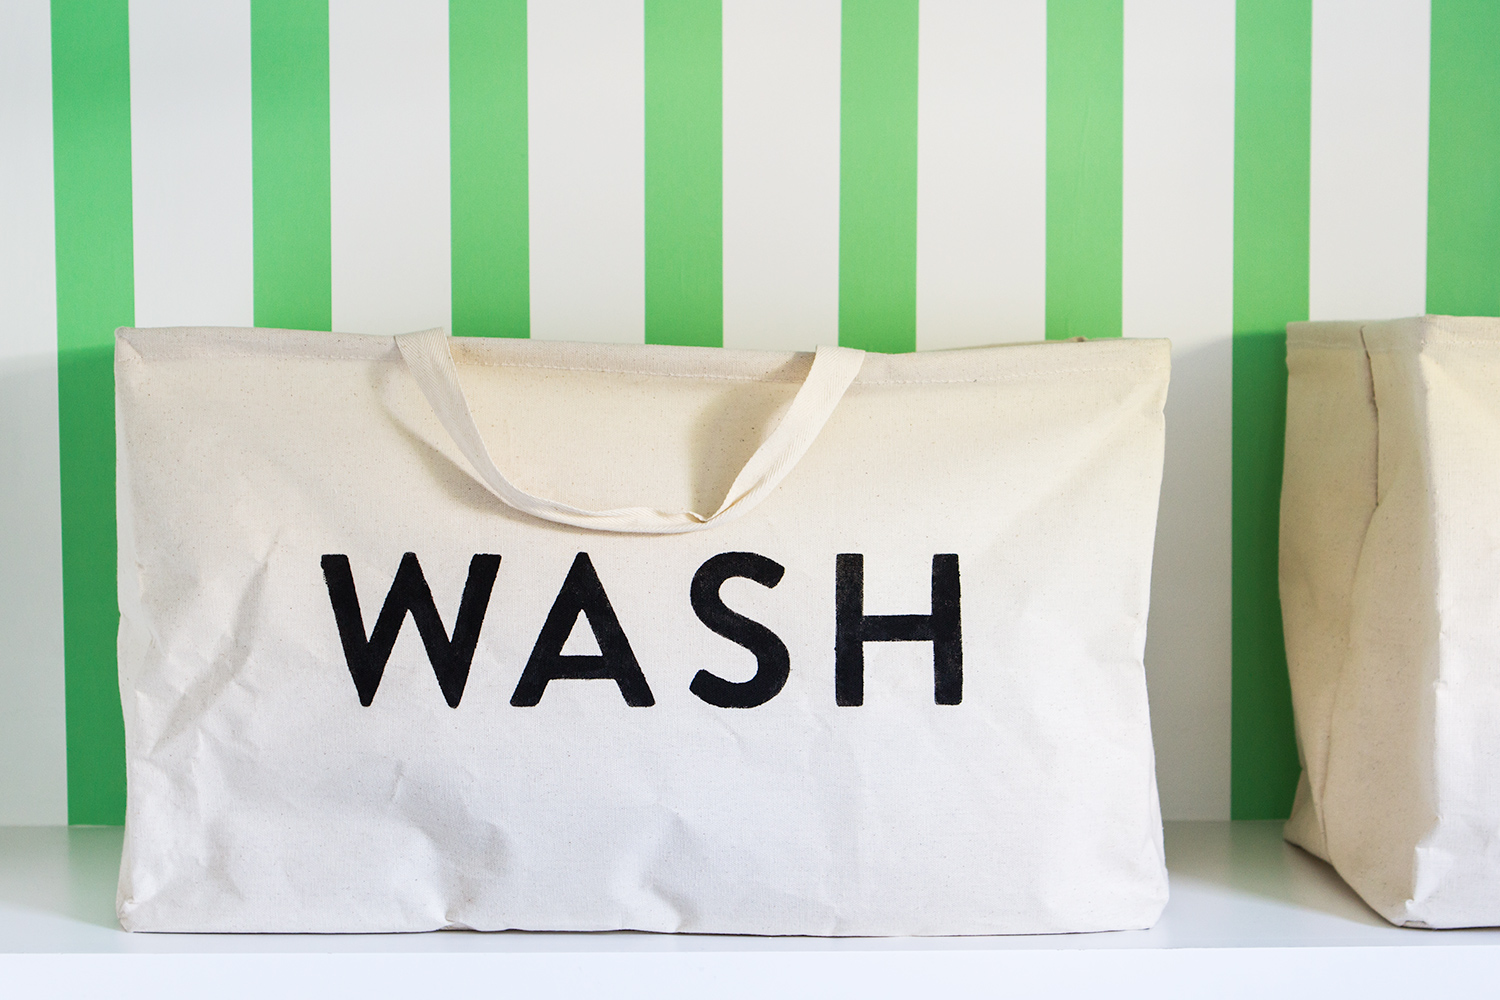 Create your own custom laundry tote with a Silhouette Cameo or Portrait using this free downloadable stencil file.